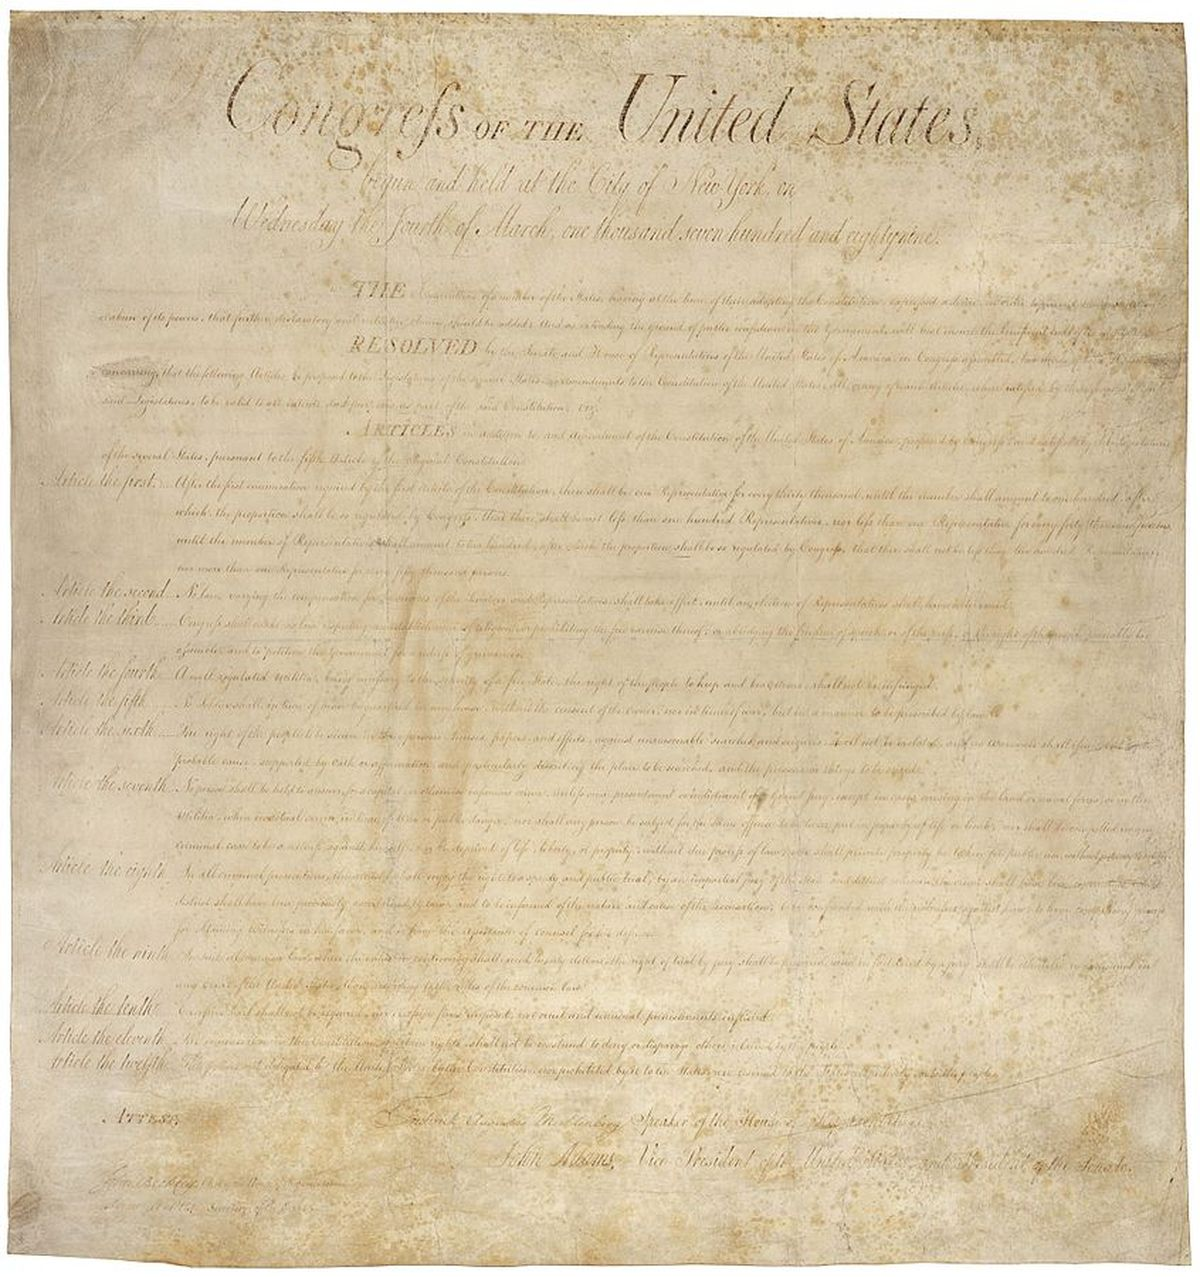 The bill of rights as it was created on September 25, 1789